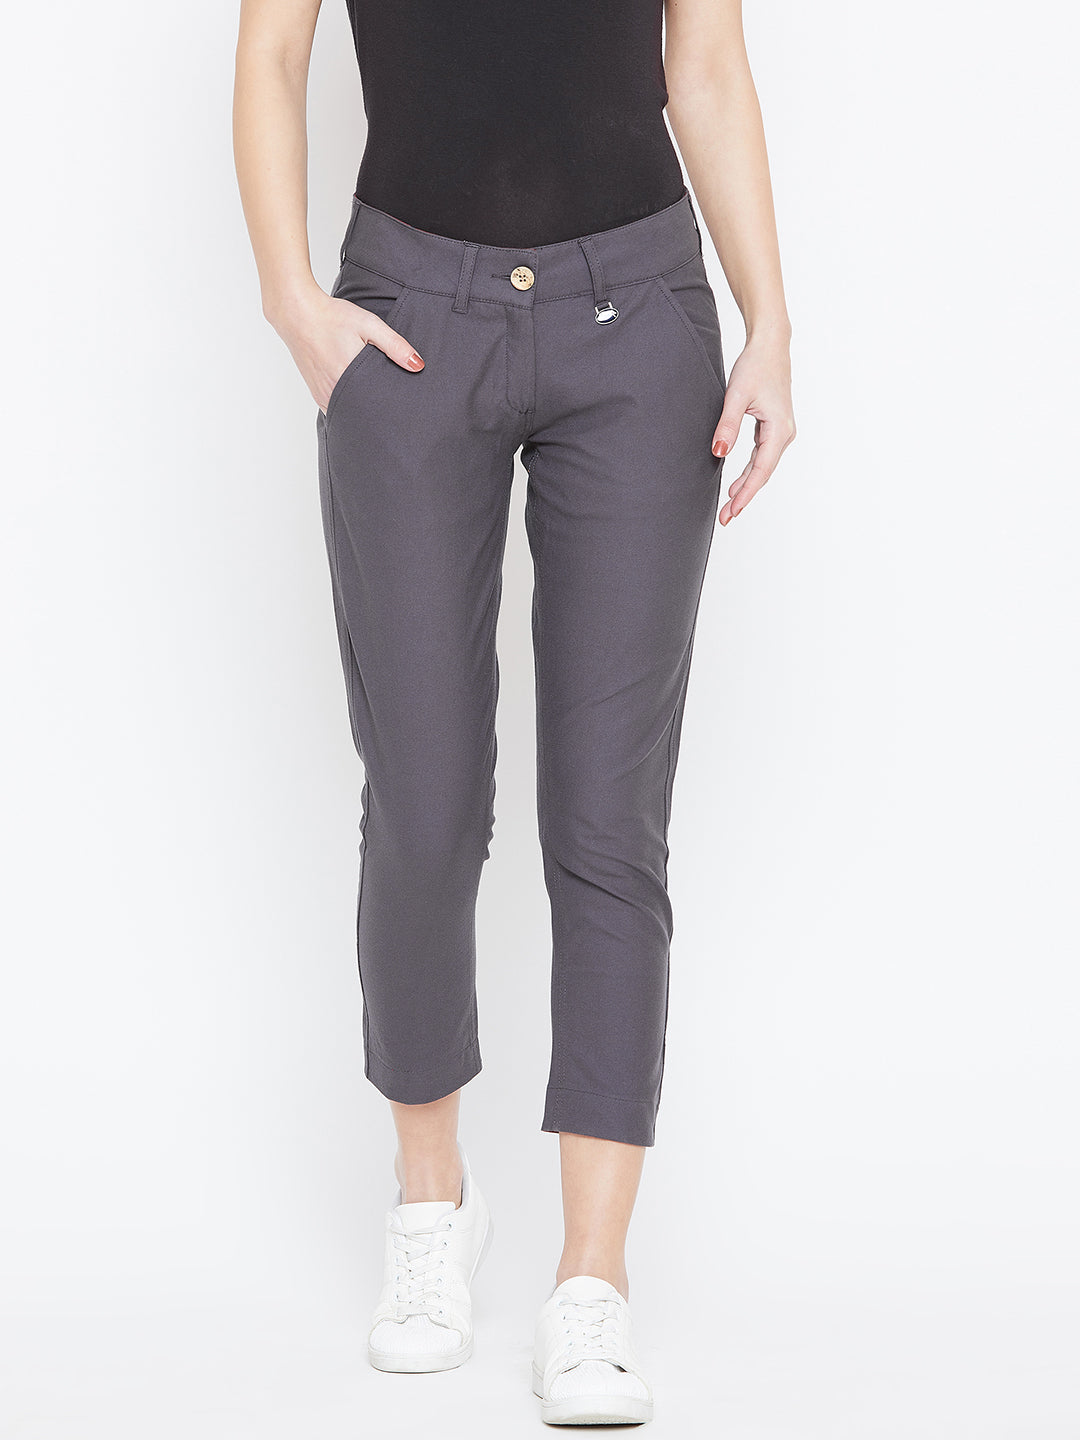 Women Grey Solid Skinny Fit Chinos Trousers